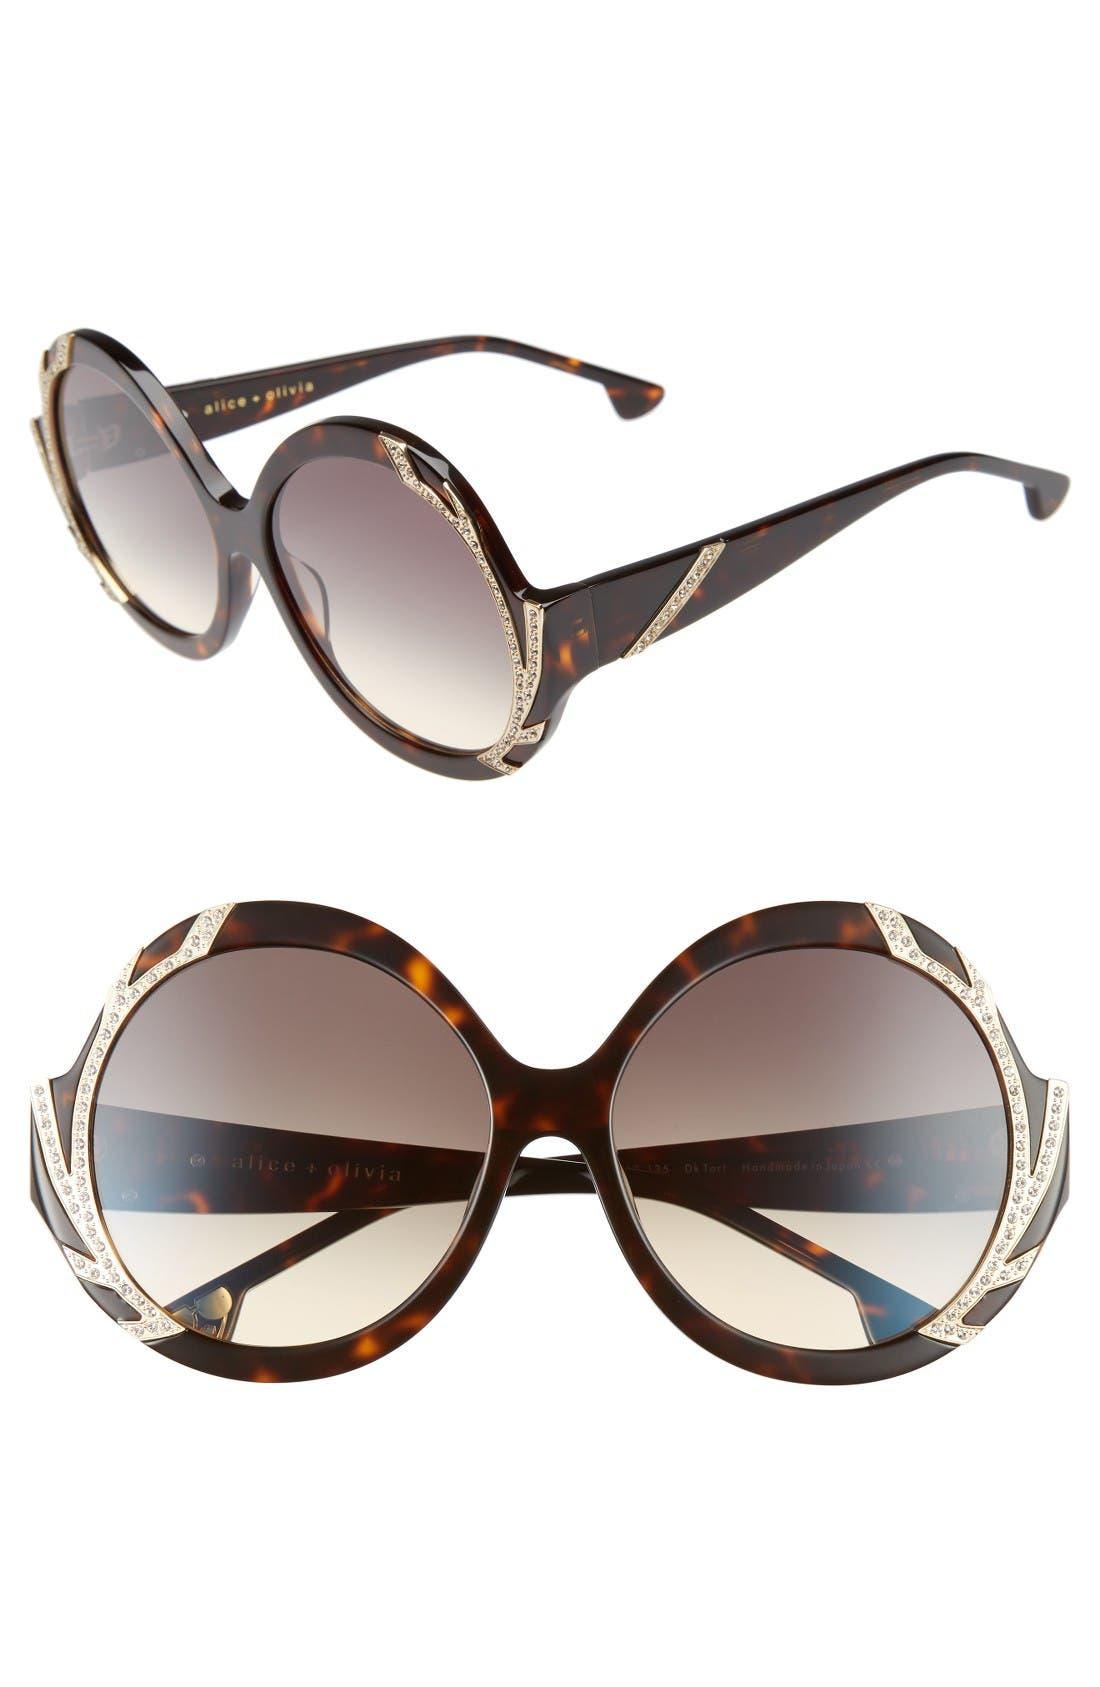 Stacey Crystal 59mm Gradient Lens Round Sunglasses,                         Main,                         color, Dark Tortoise